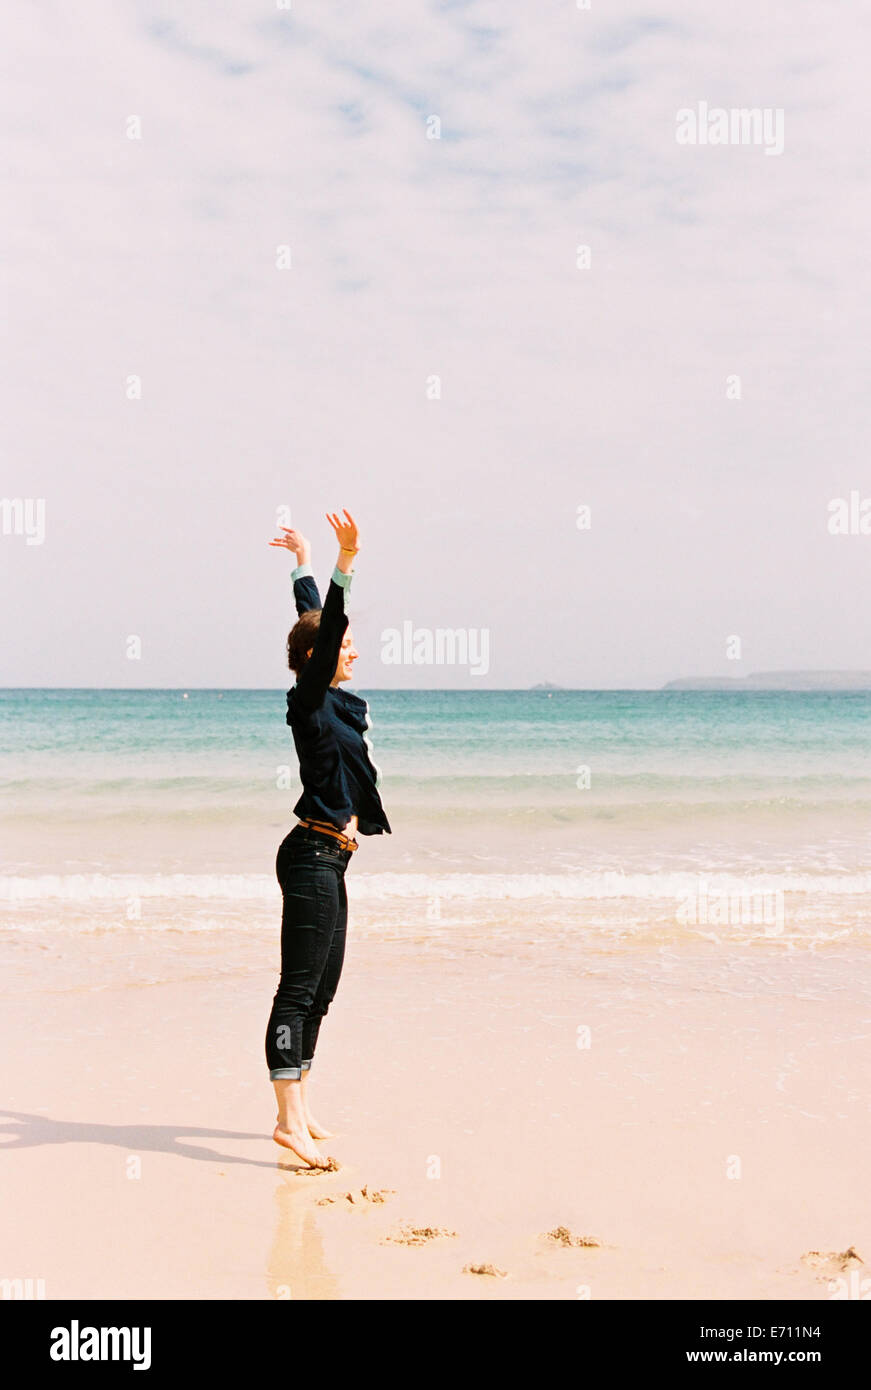 A woman standing barefoot on the sand raising her arms above her head, in a gesture. - Stock Image